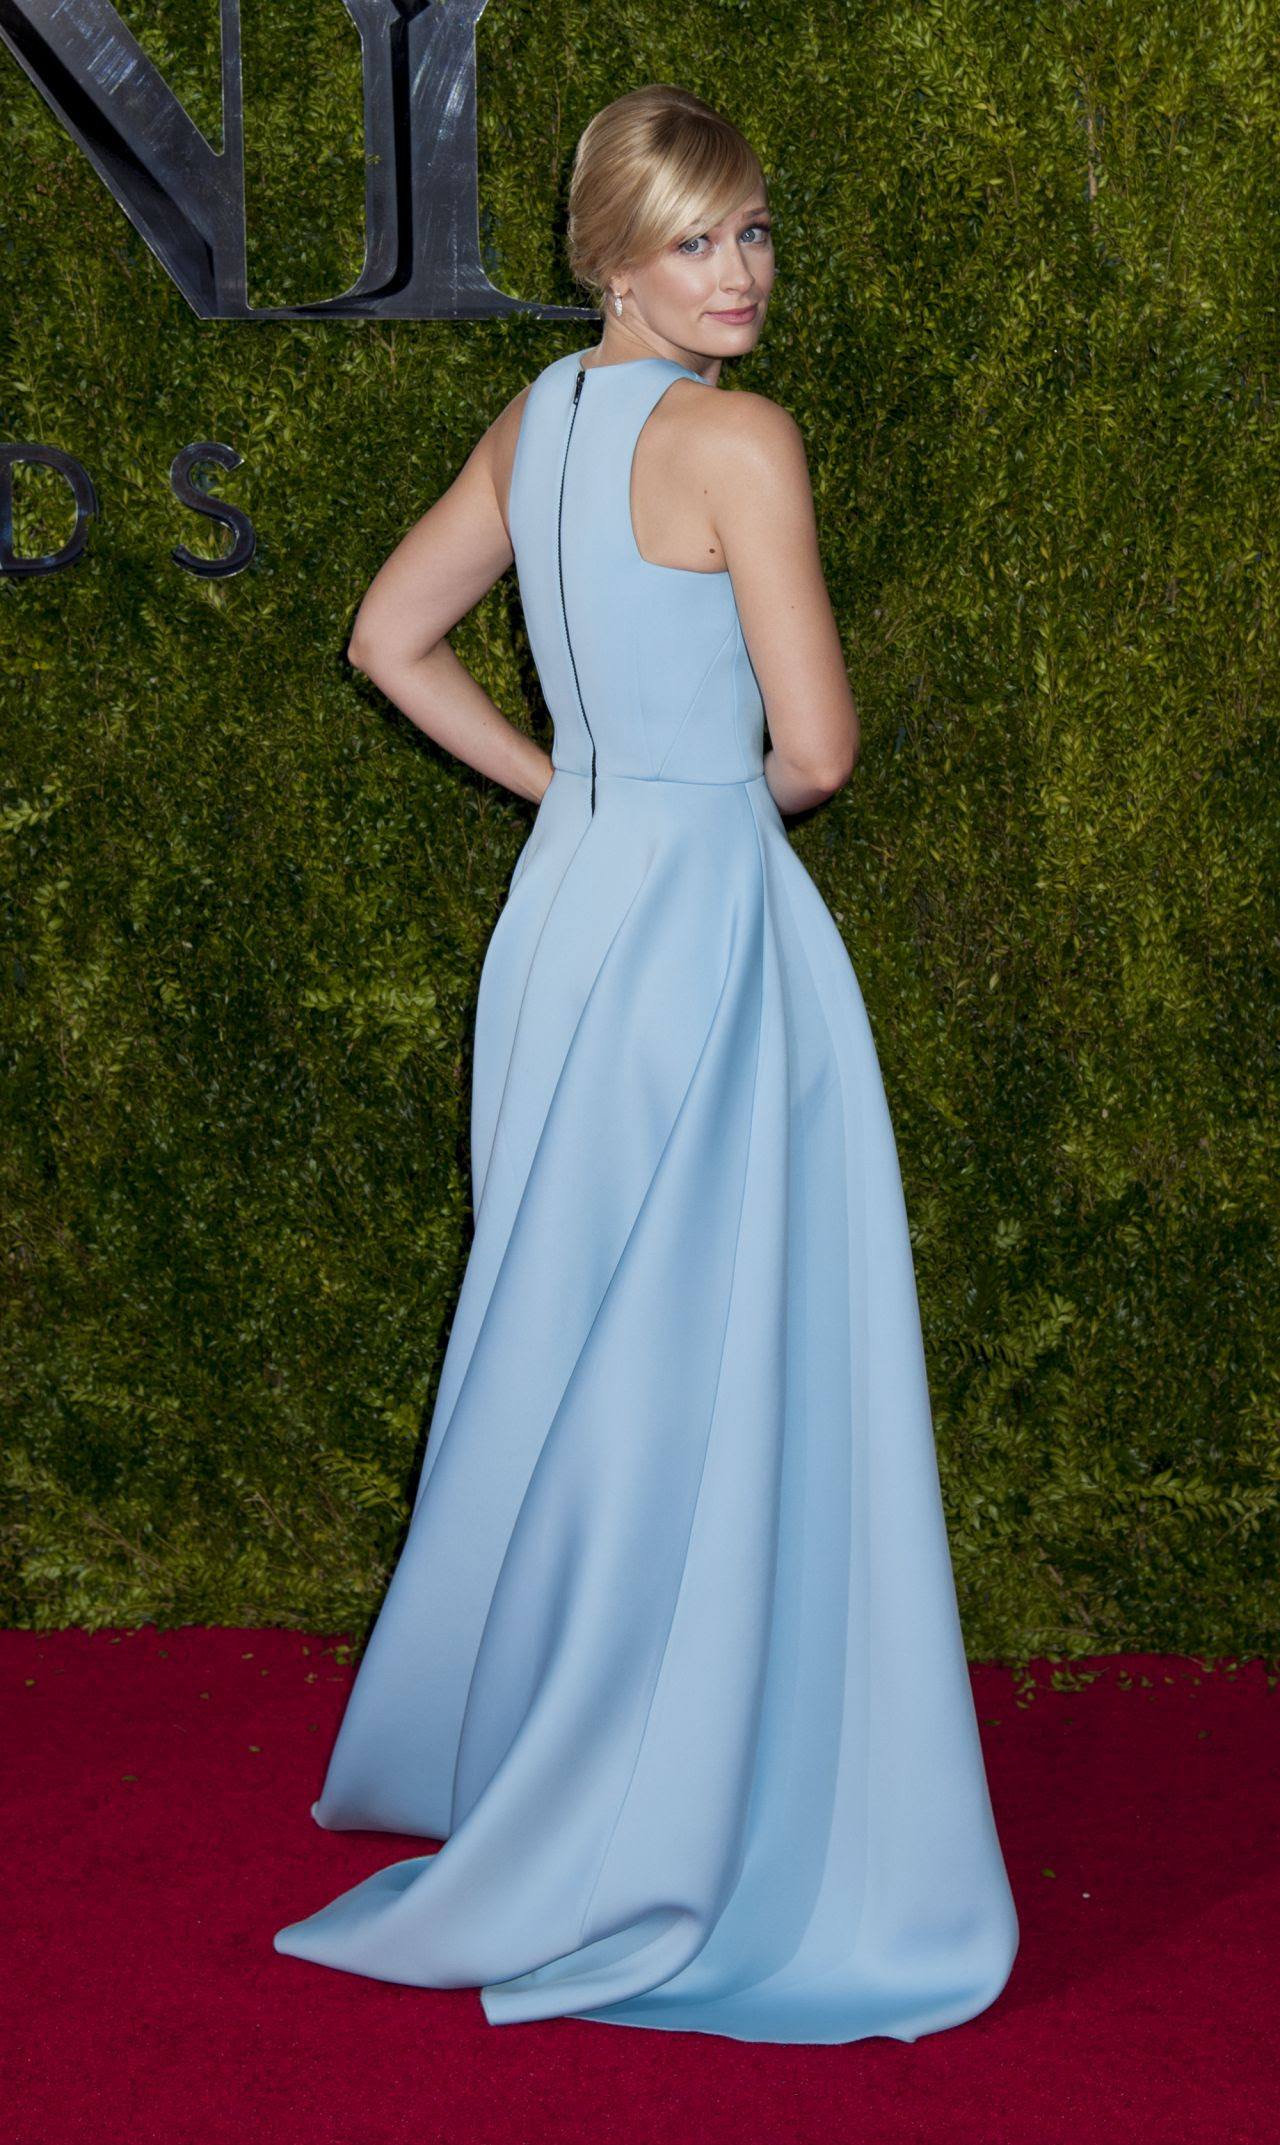 http://fashionsizzle.com/wp-content/uploads/2015/06/beth-behrs-on-red-carpet-2015-tony-awards-in-new-york-city_2.jpg